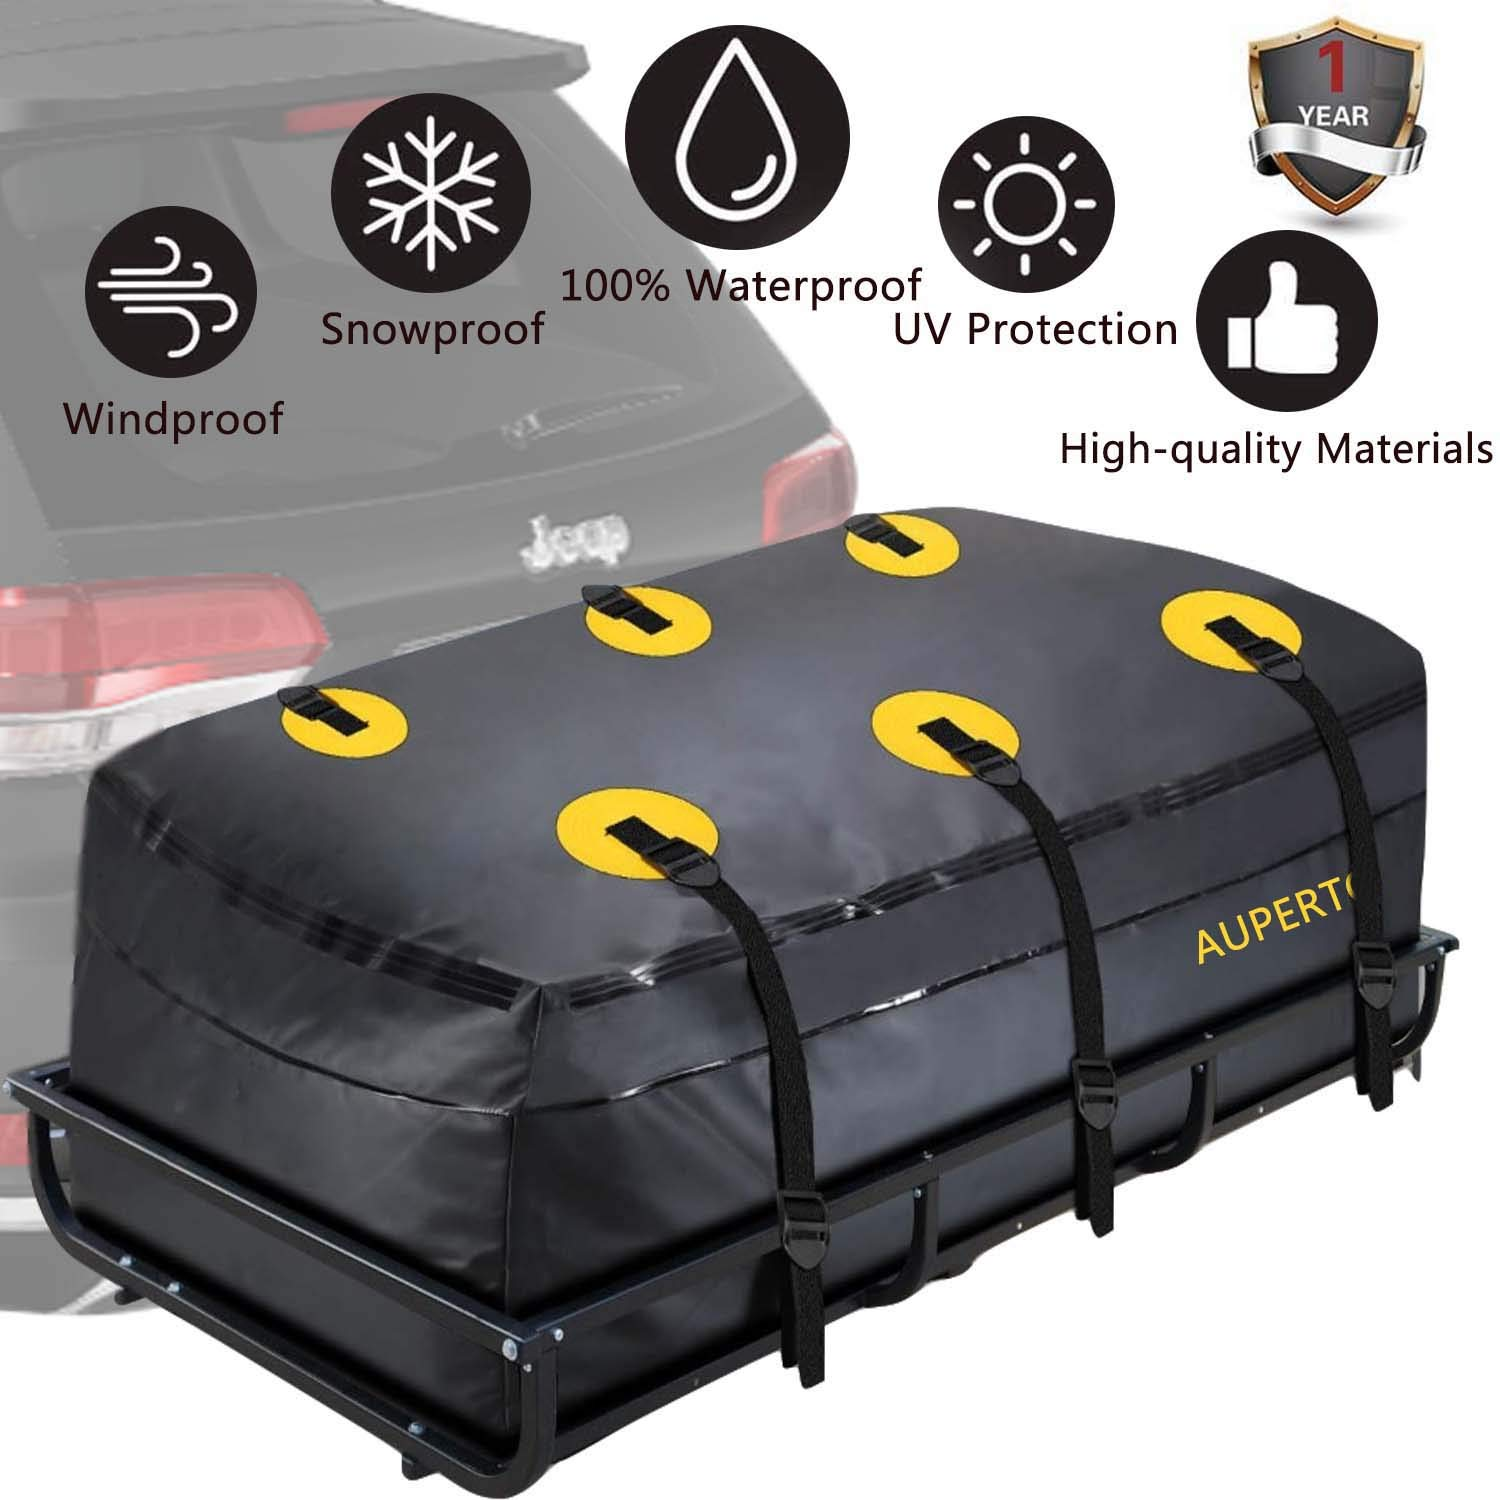 AUPERTO Cargo Bag, Waterproof Cargo Tray Bag 20 Cubic Feet Trailer Hitch Cargo Carrier Bag by AUPERTO